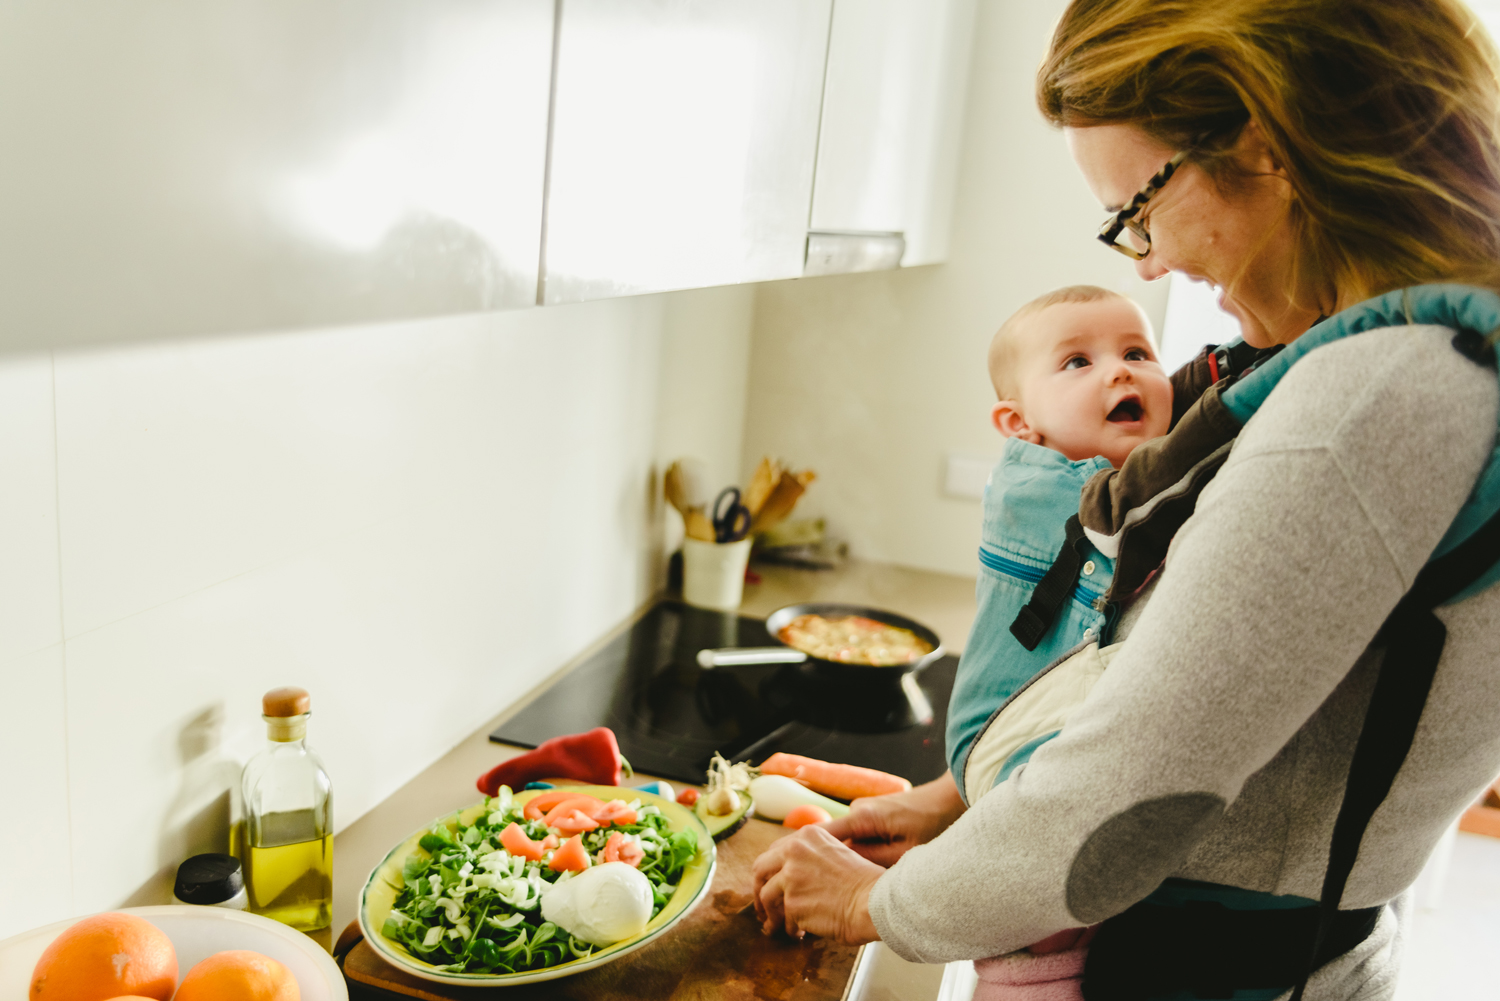 mom with baby preparing meal